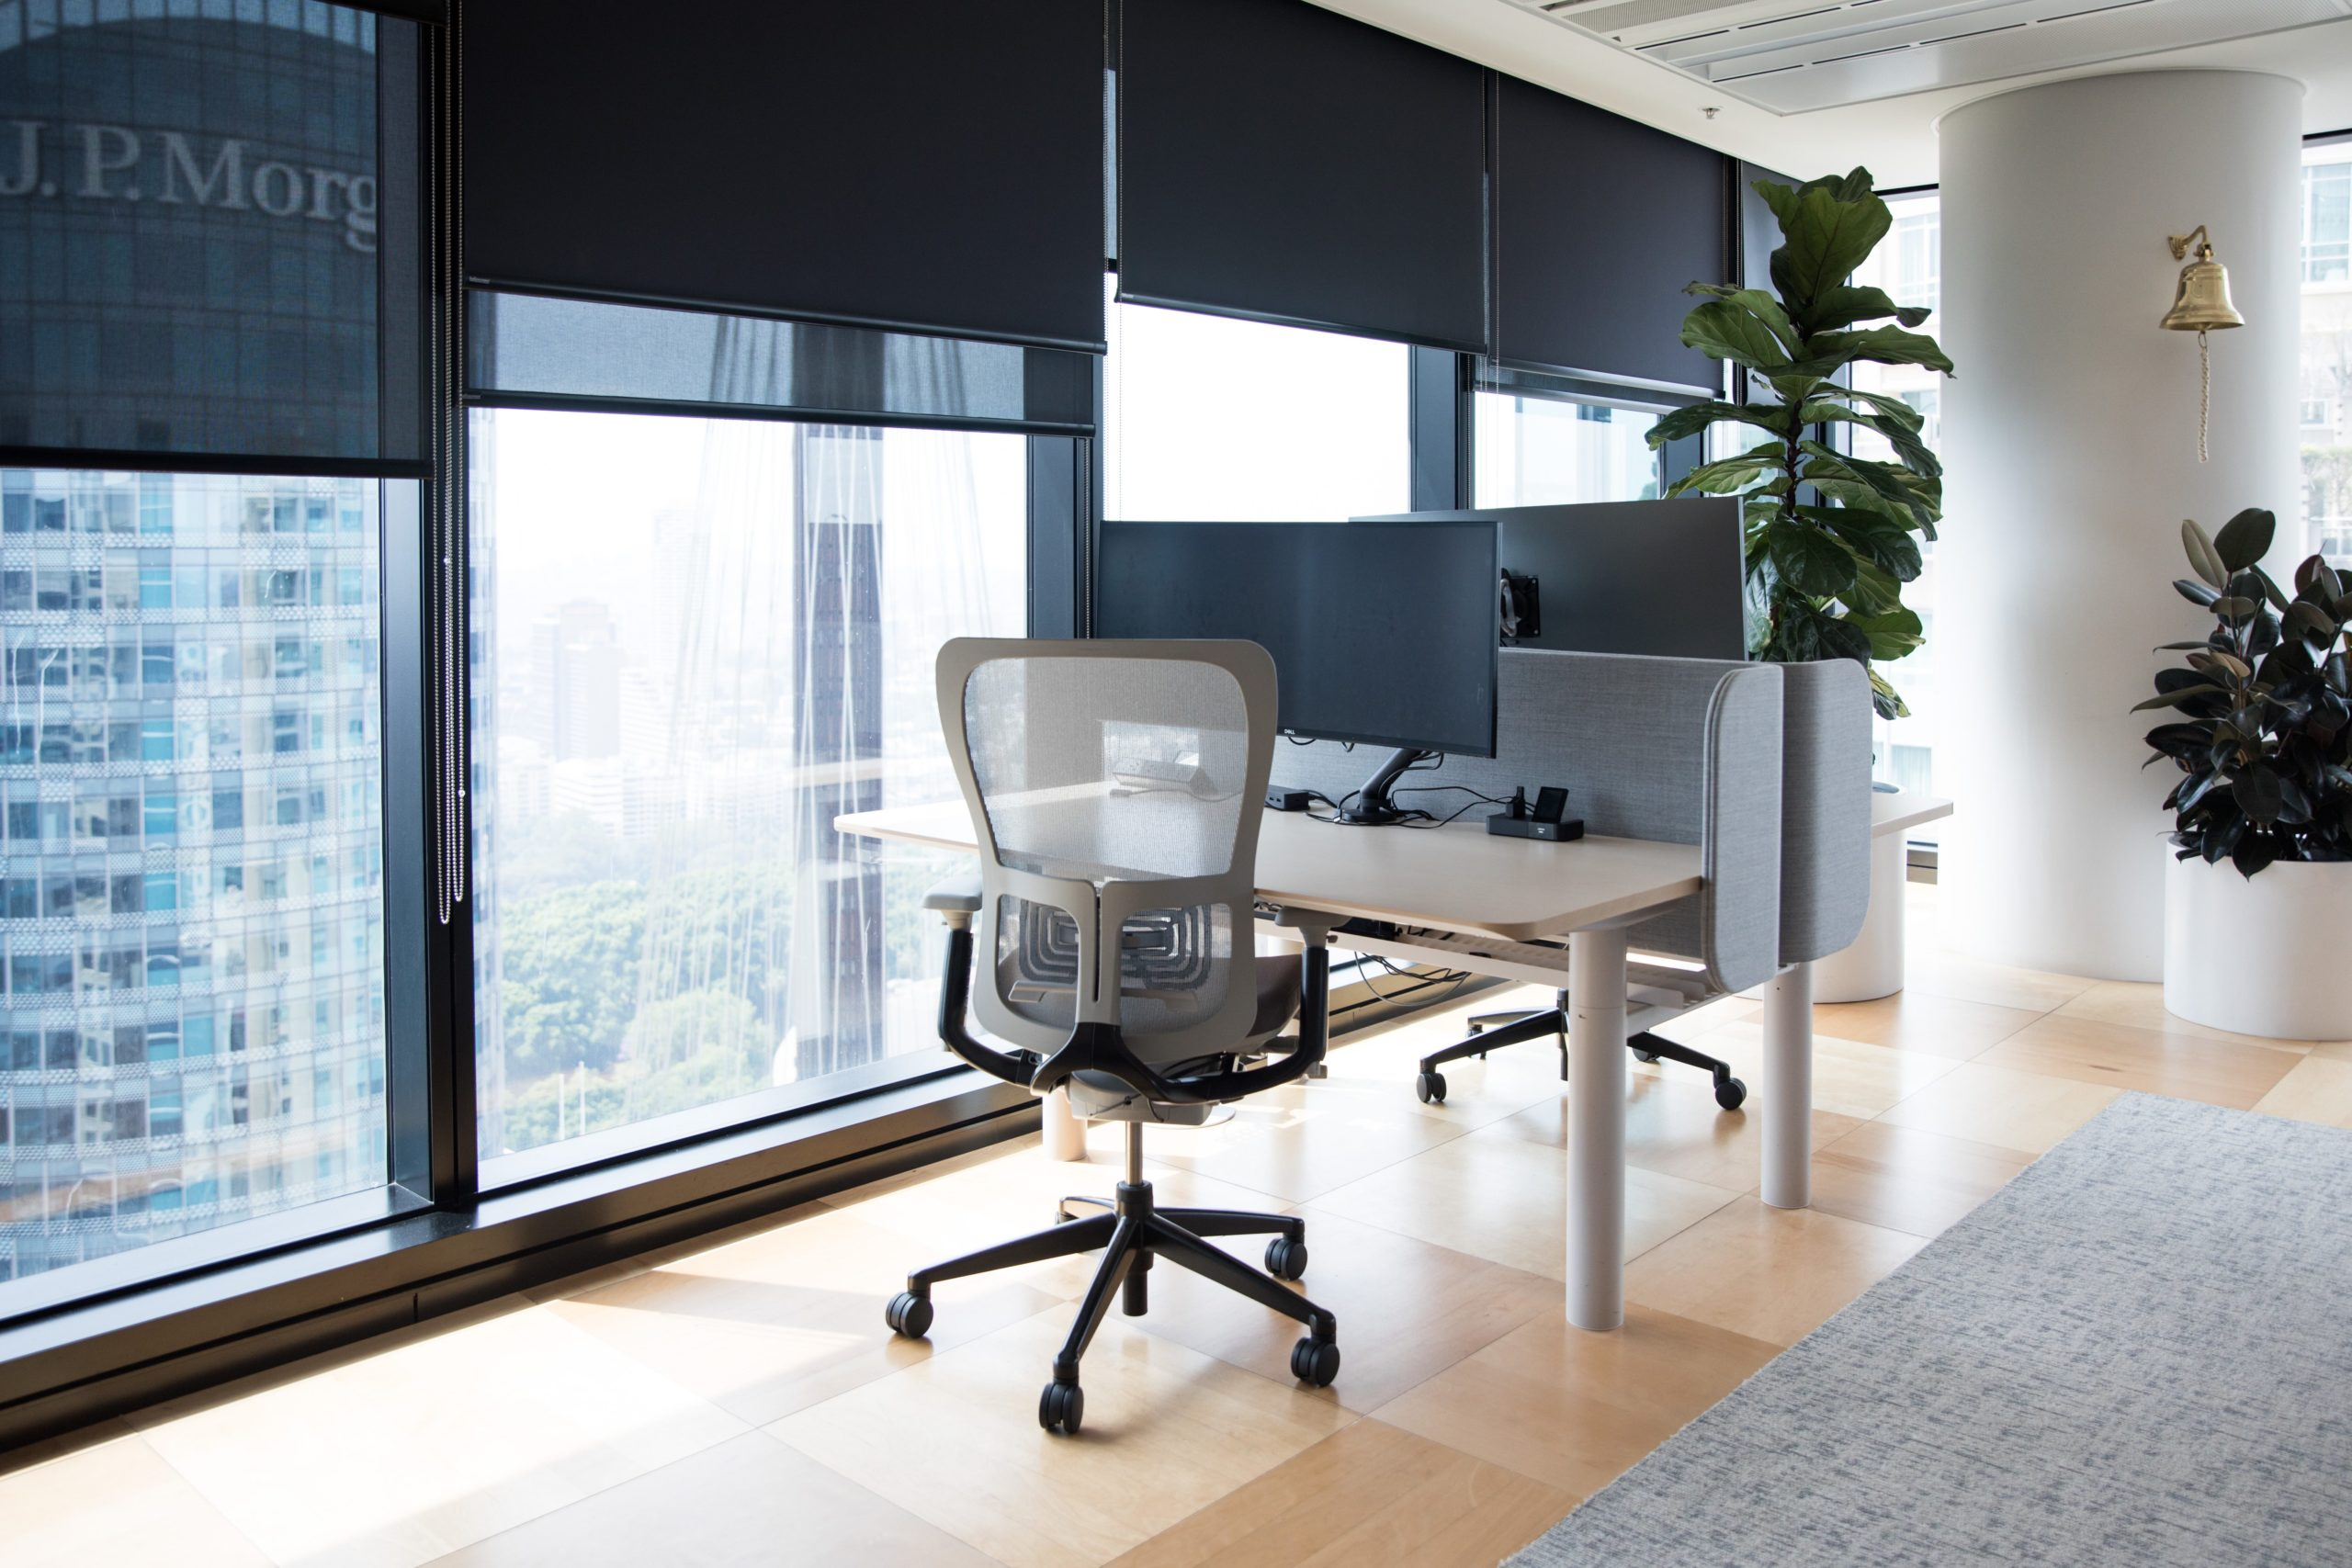 modern-office-fitout-interior-in-a-commercial-buil-GNJ6R8C